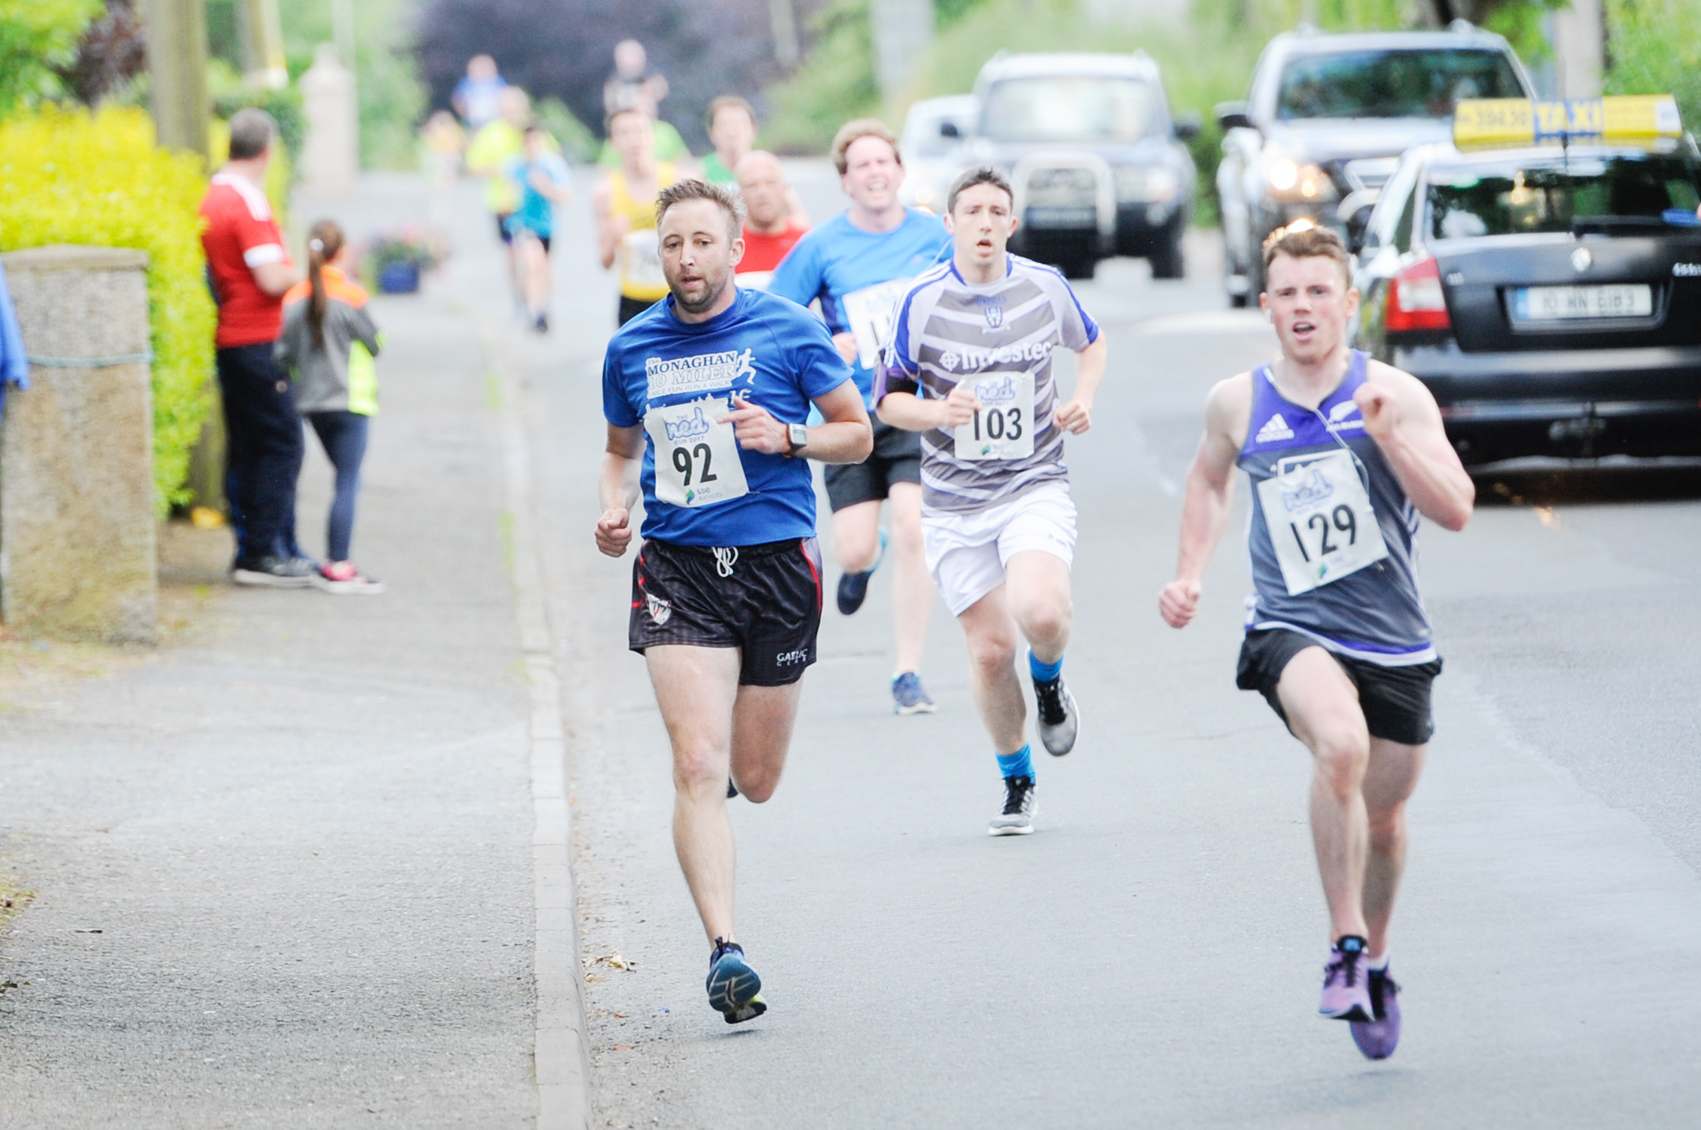 Some of the runners finishing The Ned Run in Scotstown, last Friday evening. ©Rory Geary/The Northern Standard